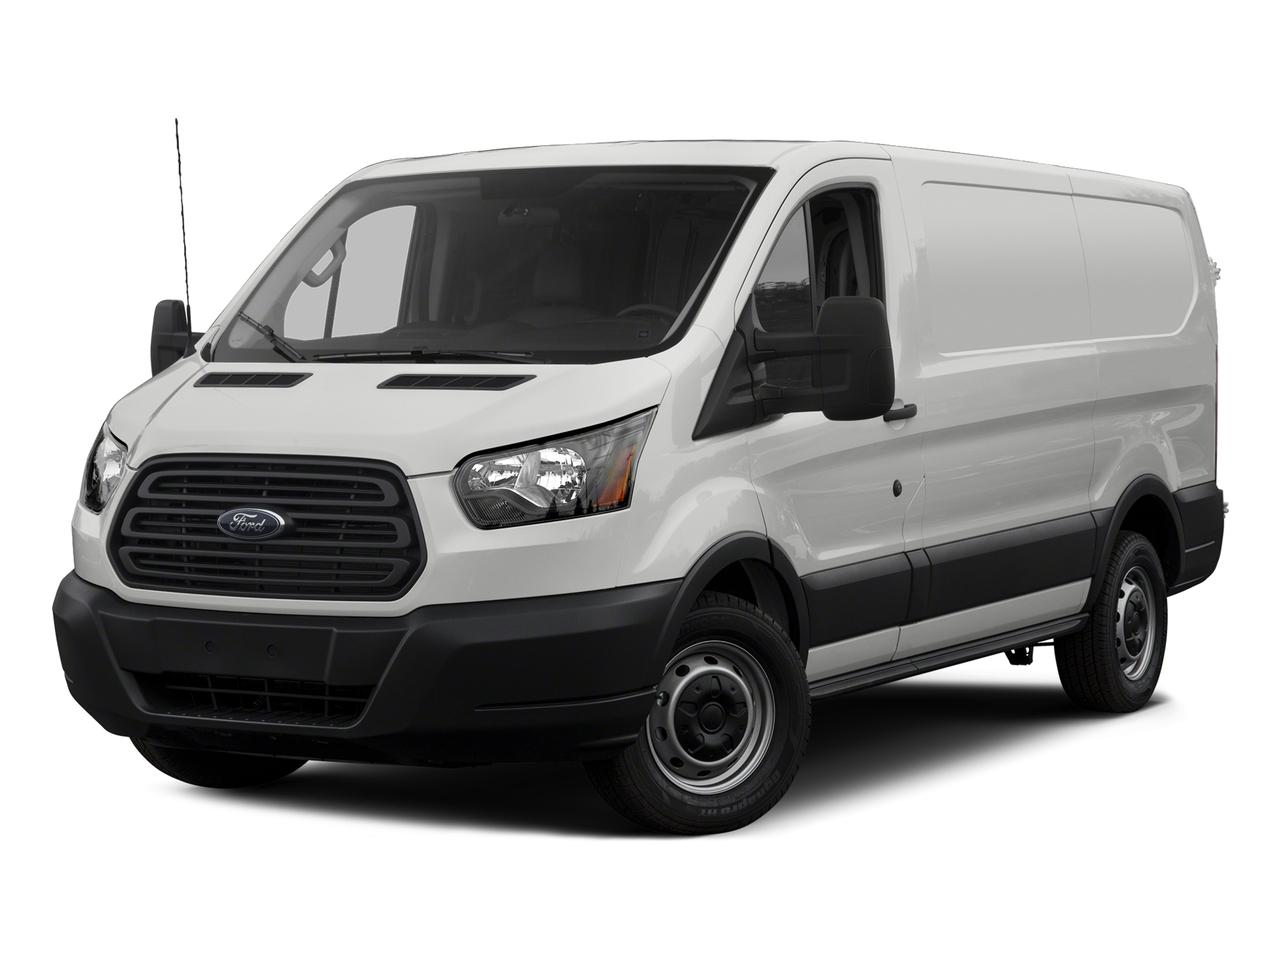 2015 Ford Transit Cargo Van Vehicle Photo in King George, VA 22485